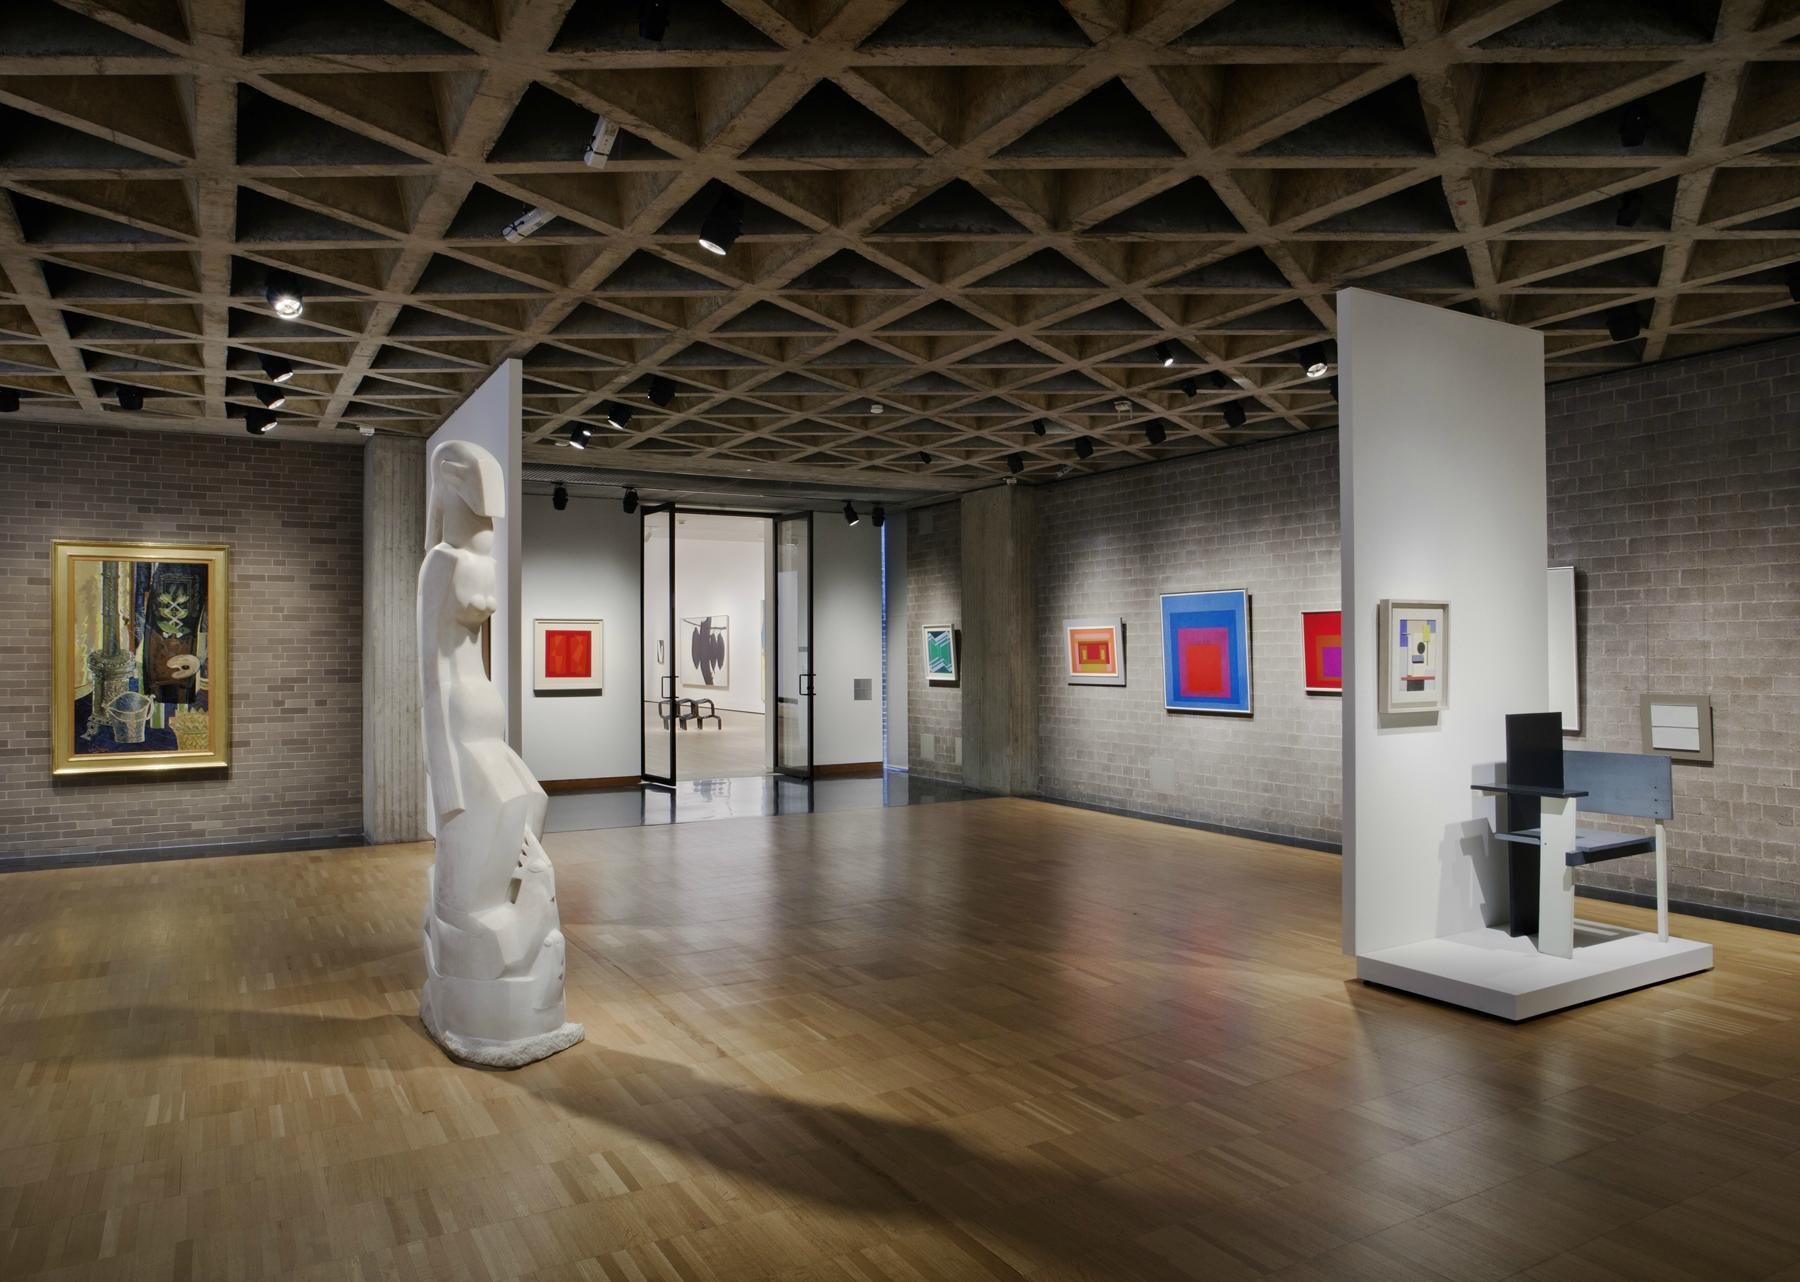 Yale university art gallery new haven ct top tips before you go tripadvisor - Art gallery interior design ideas ...